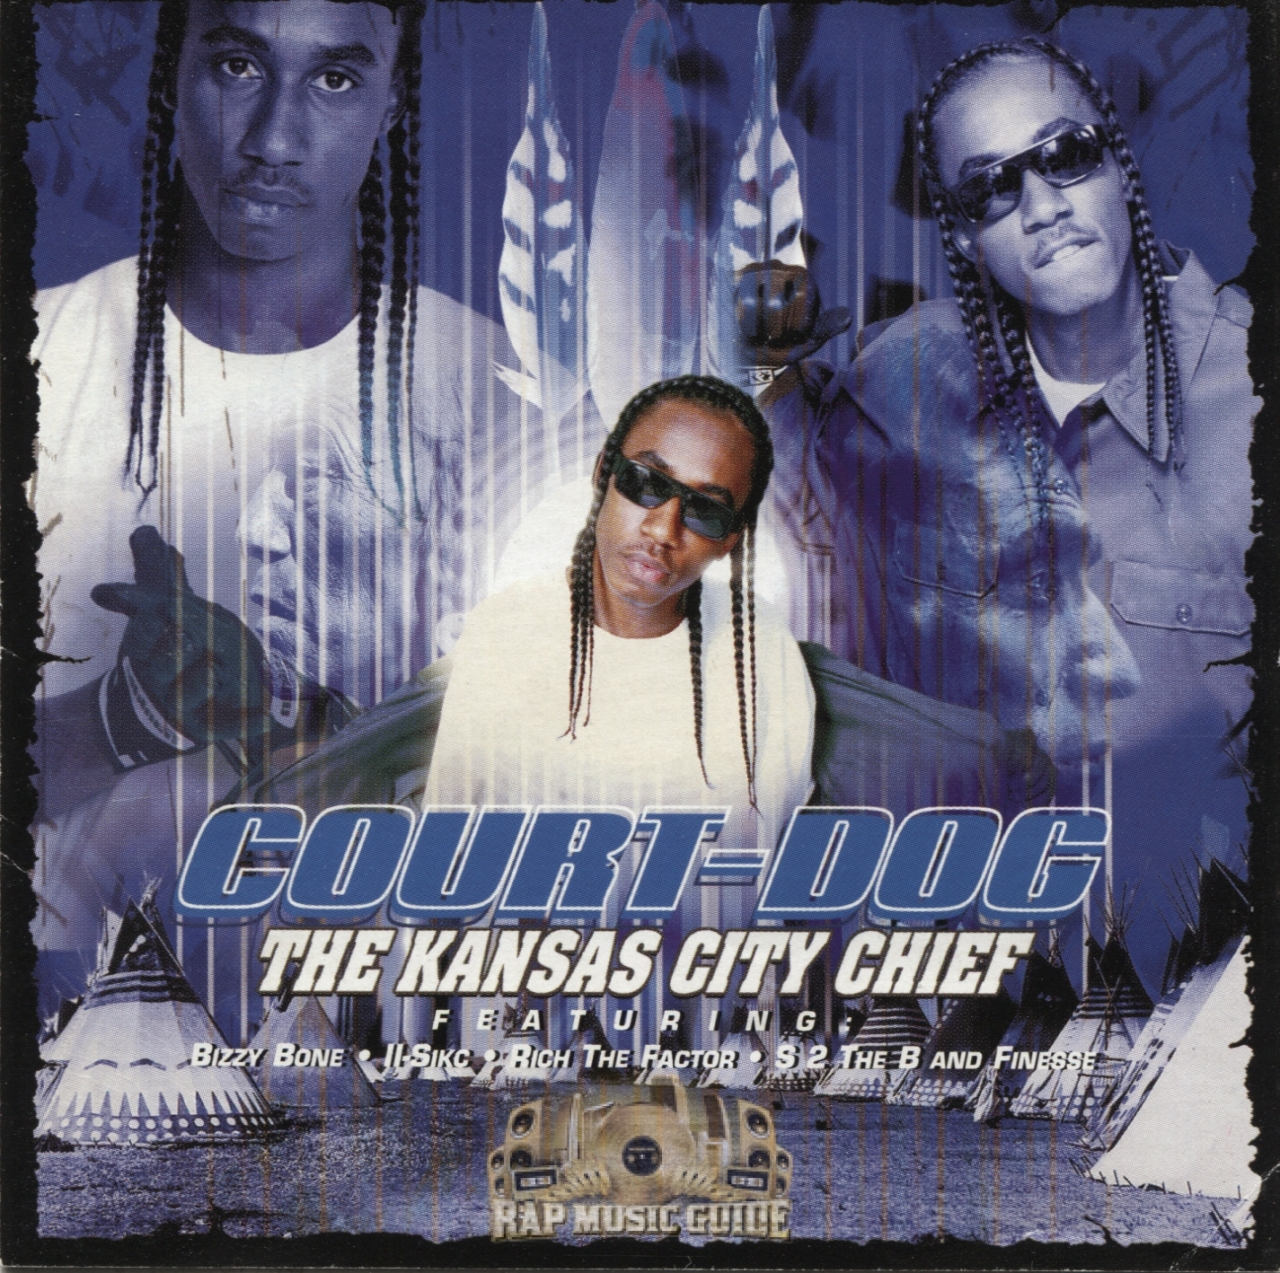 Court Dog – The Kansas City Chief